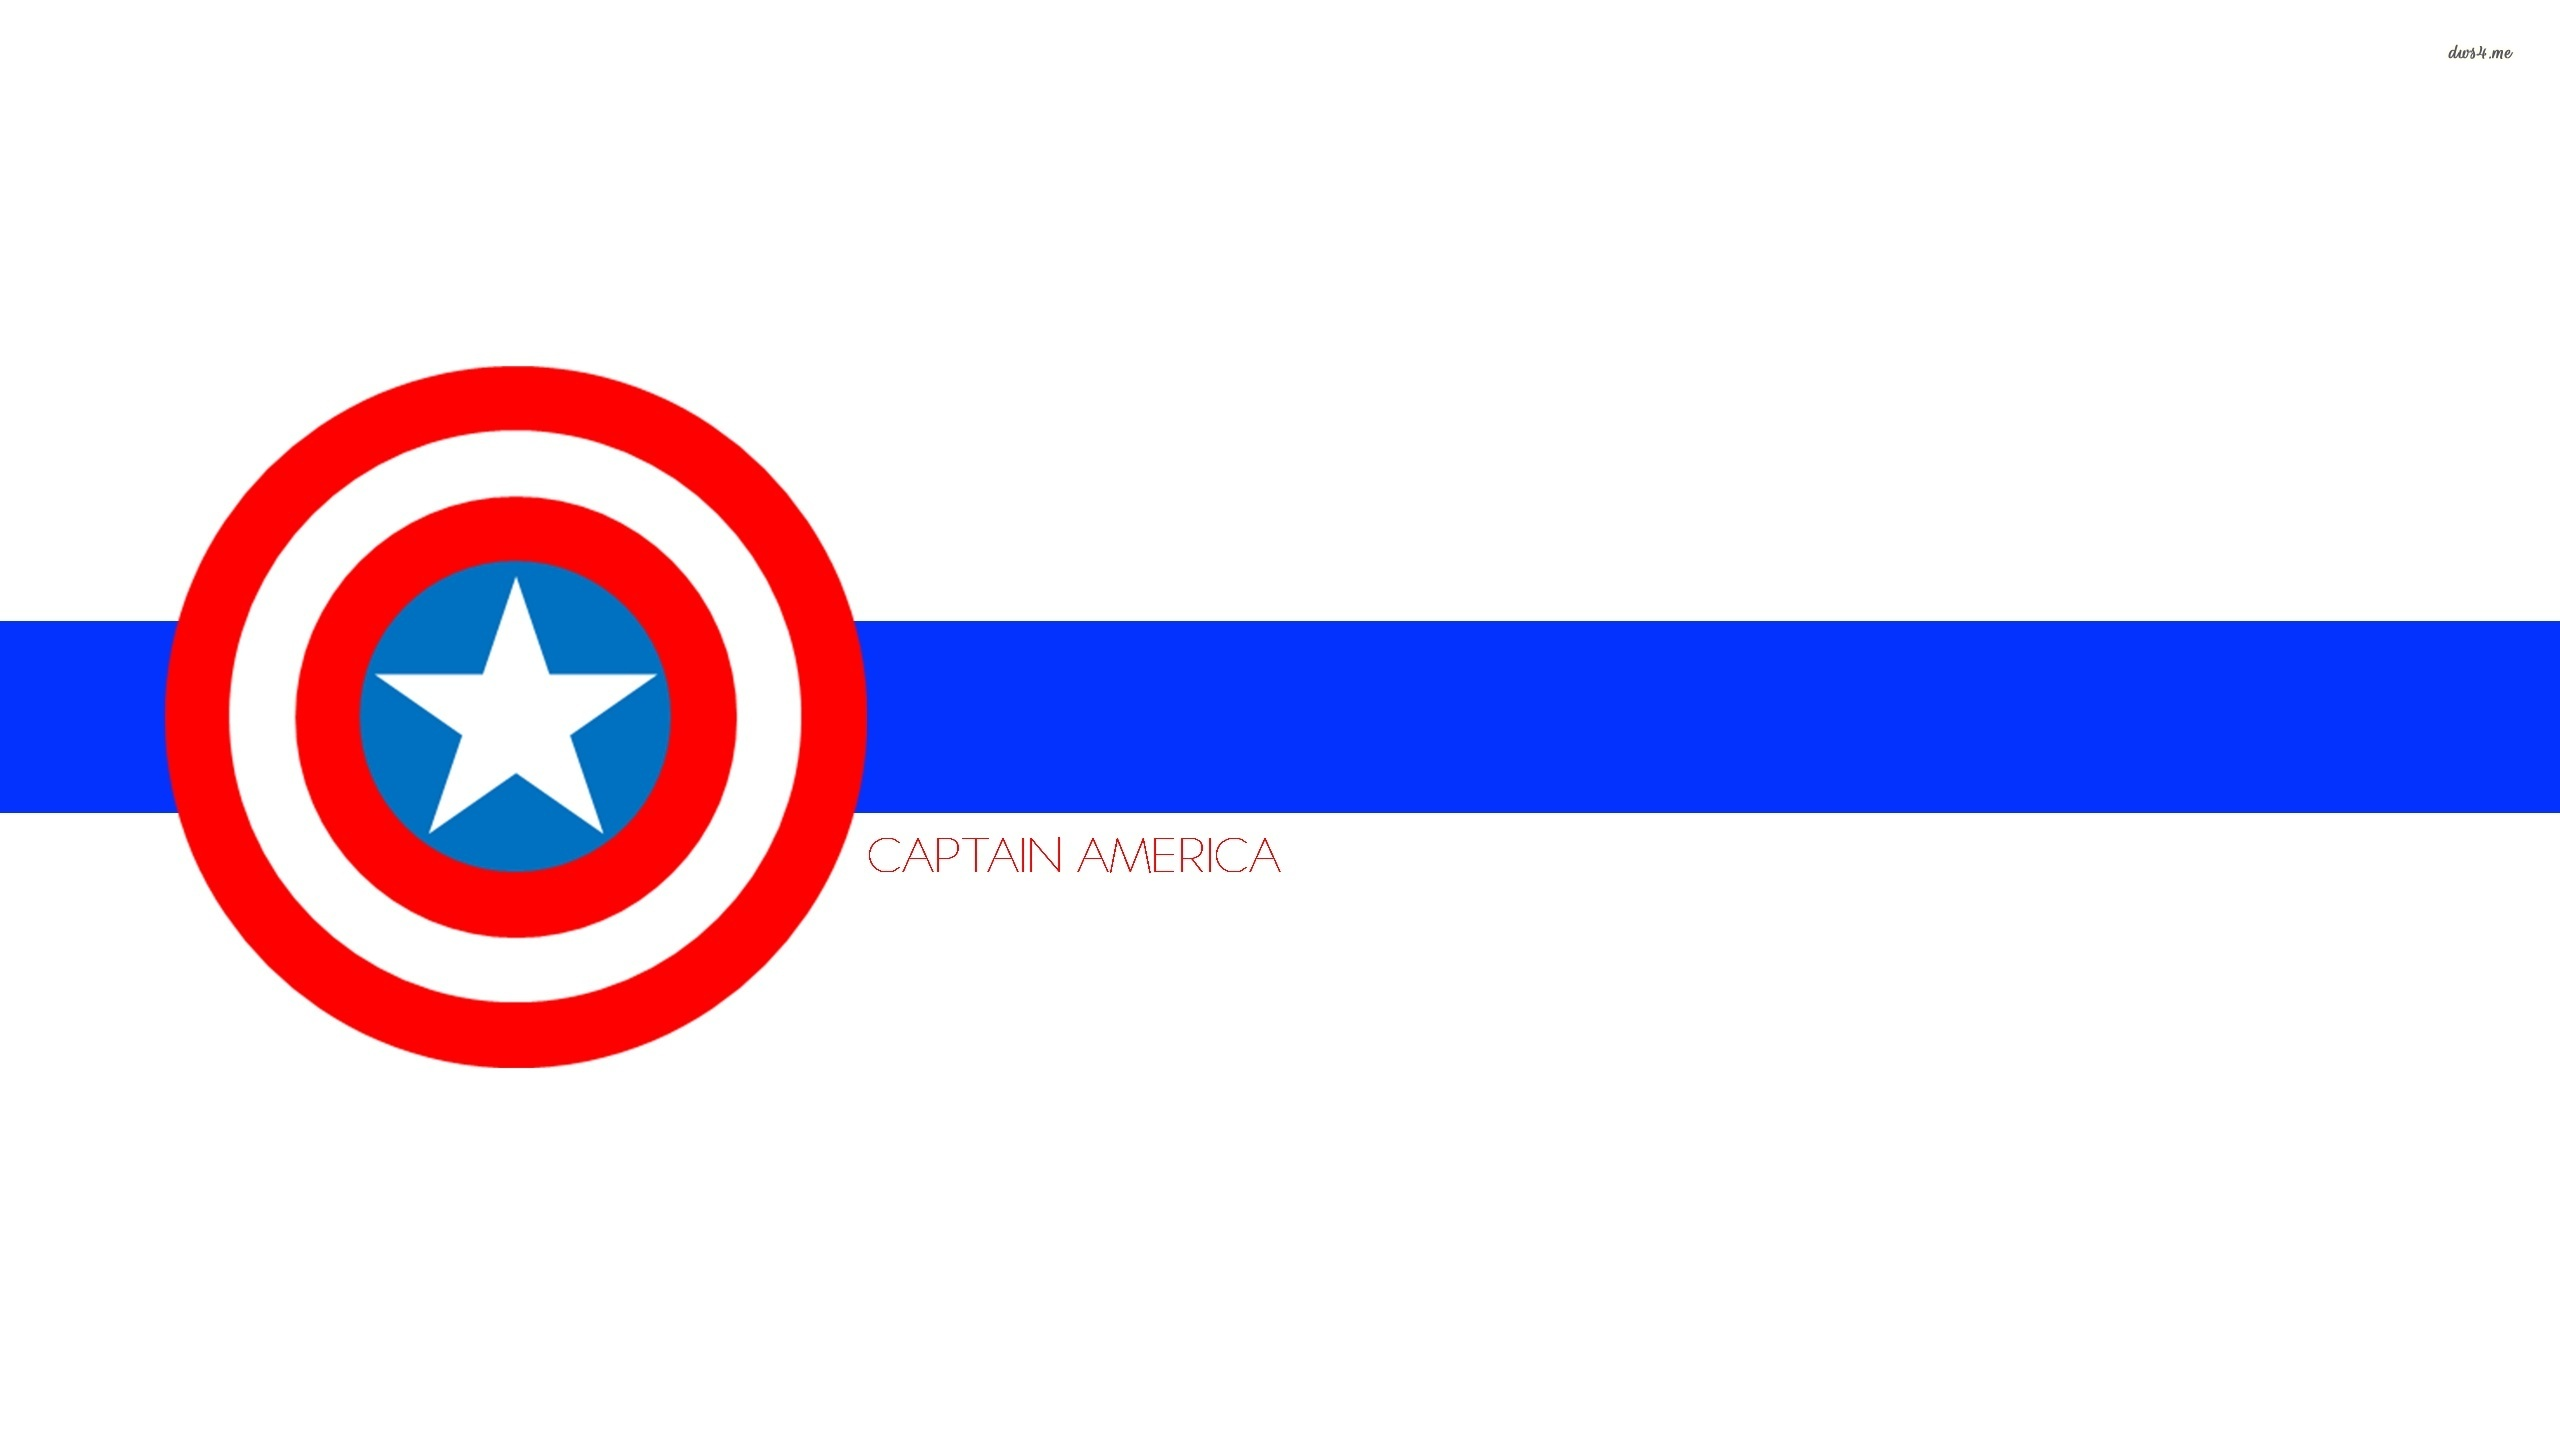 Captain America logo wallpaper   Movie wallpapers   48753 2560x1440